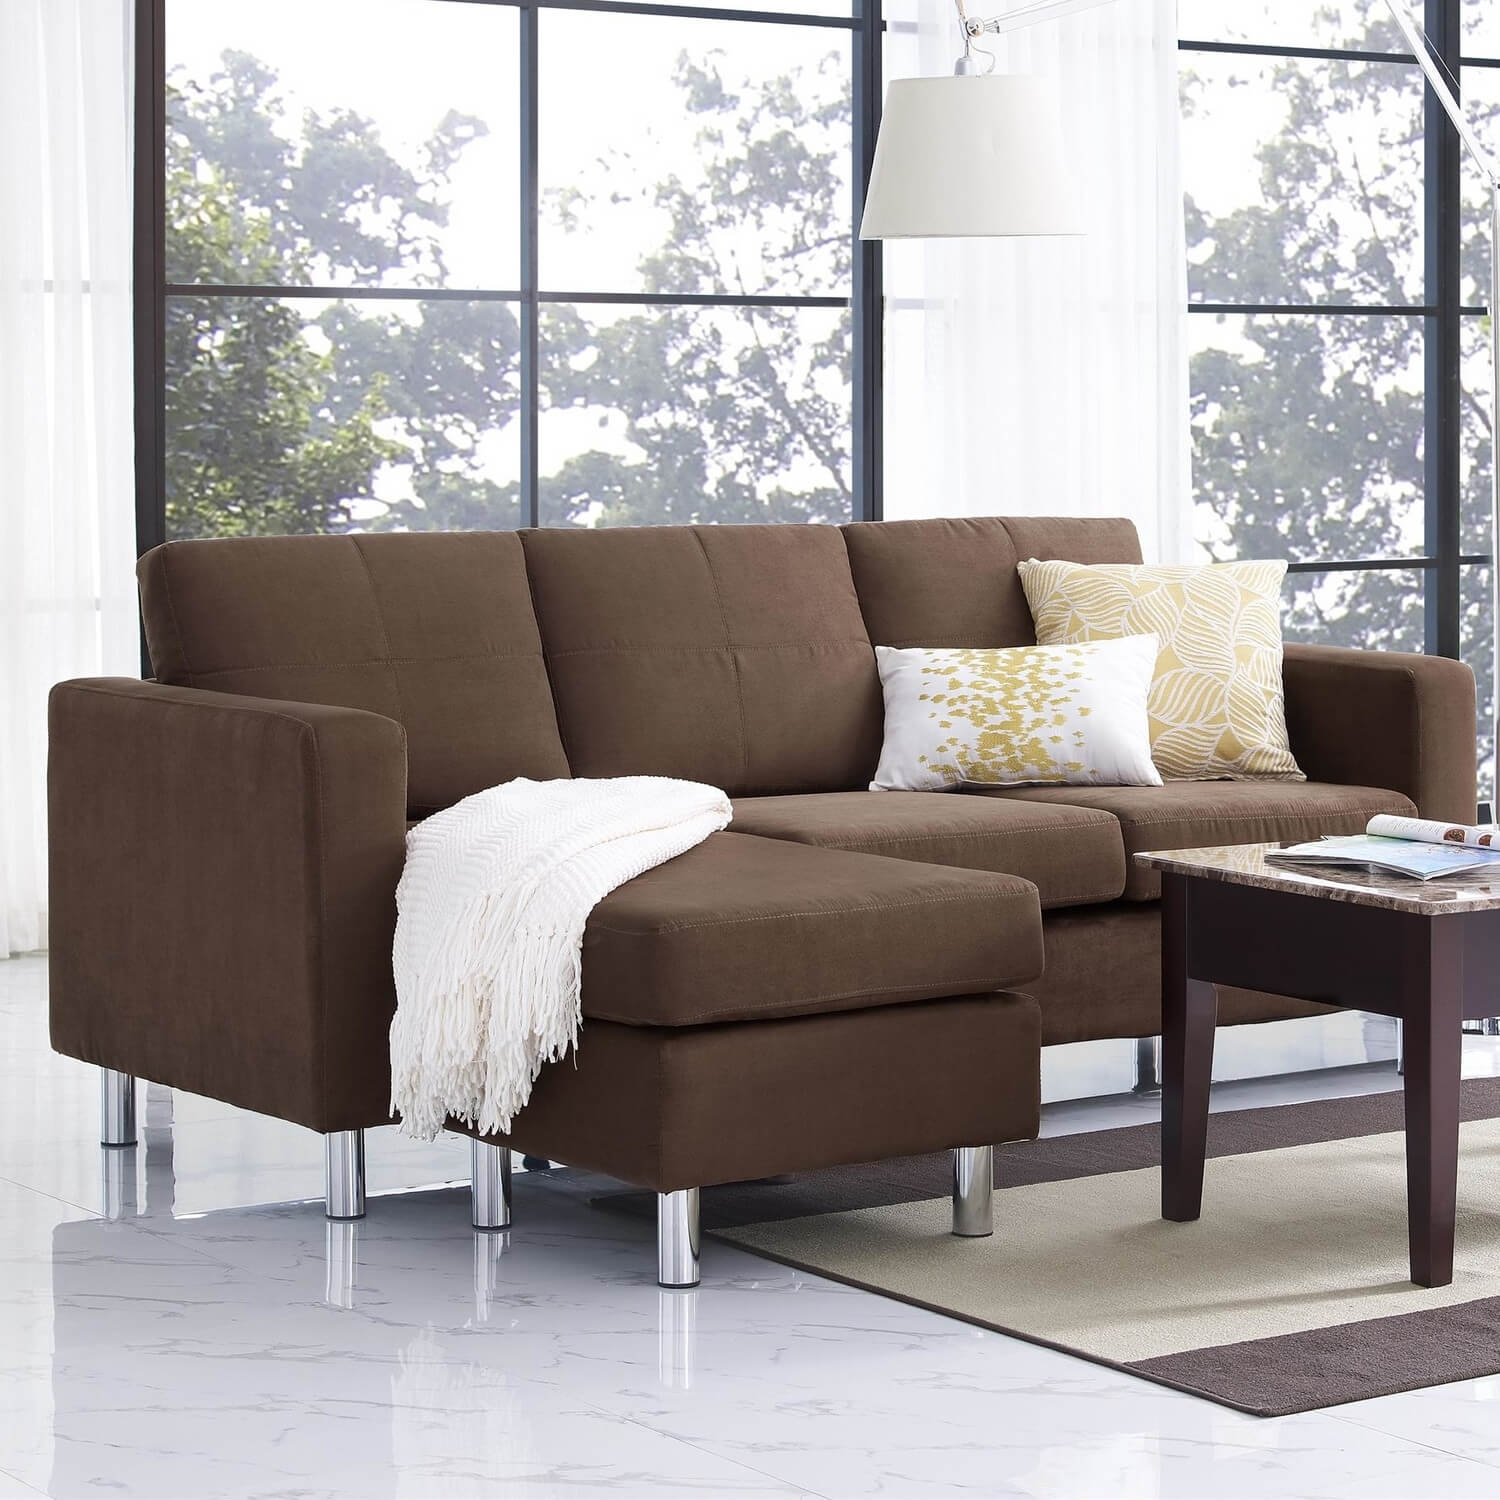 40 Cheap Sectional Sofas Under $500 For 2018 for Sectional Sofas Under 500 (Image 1 of 15)